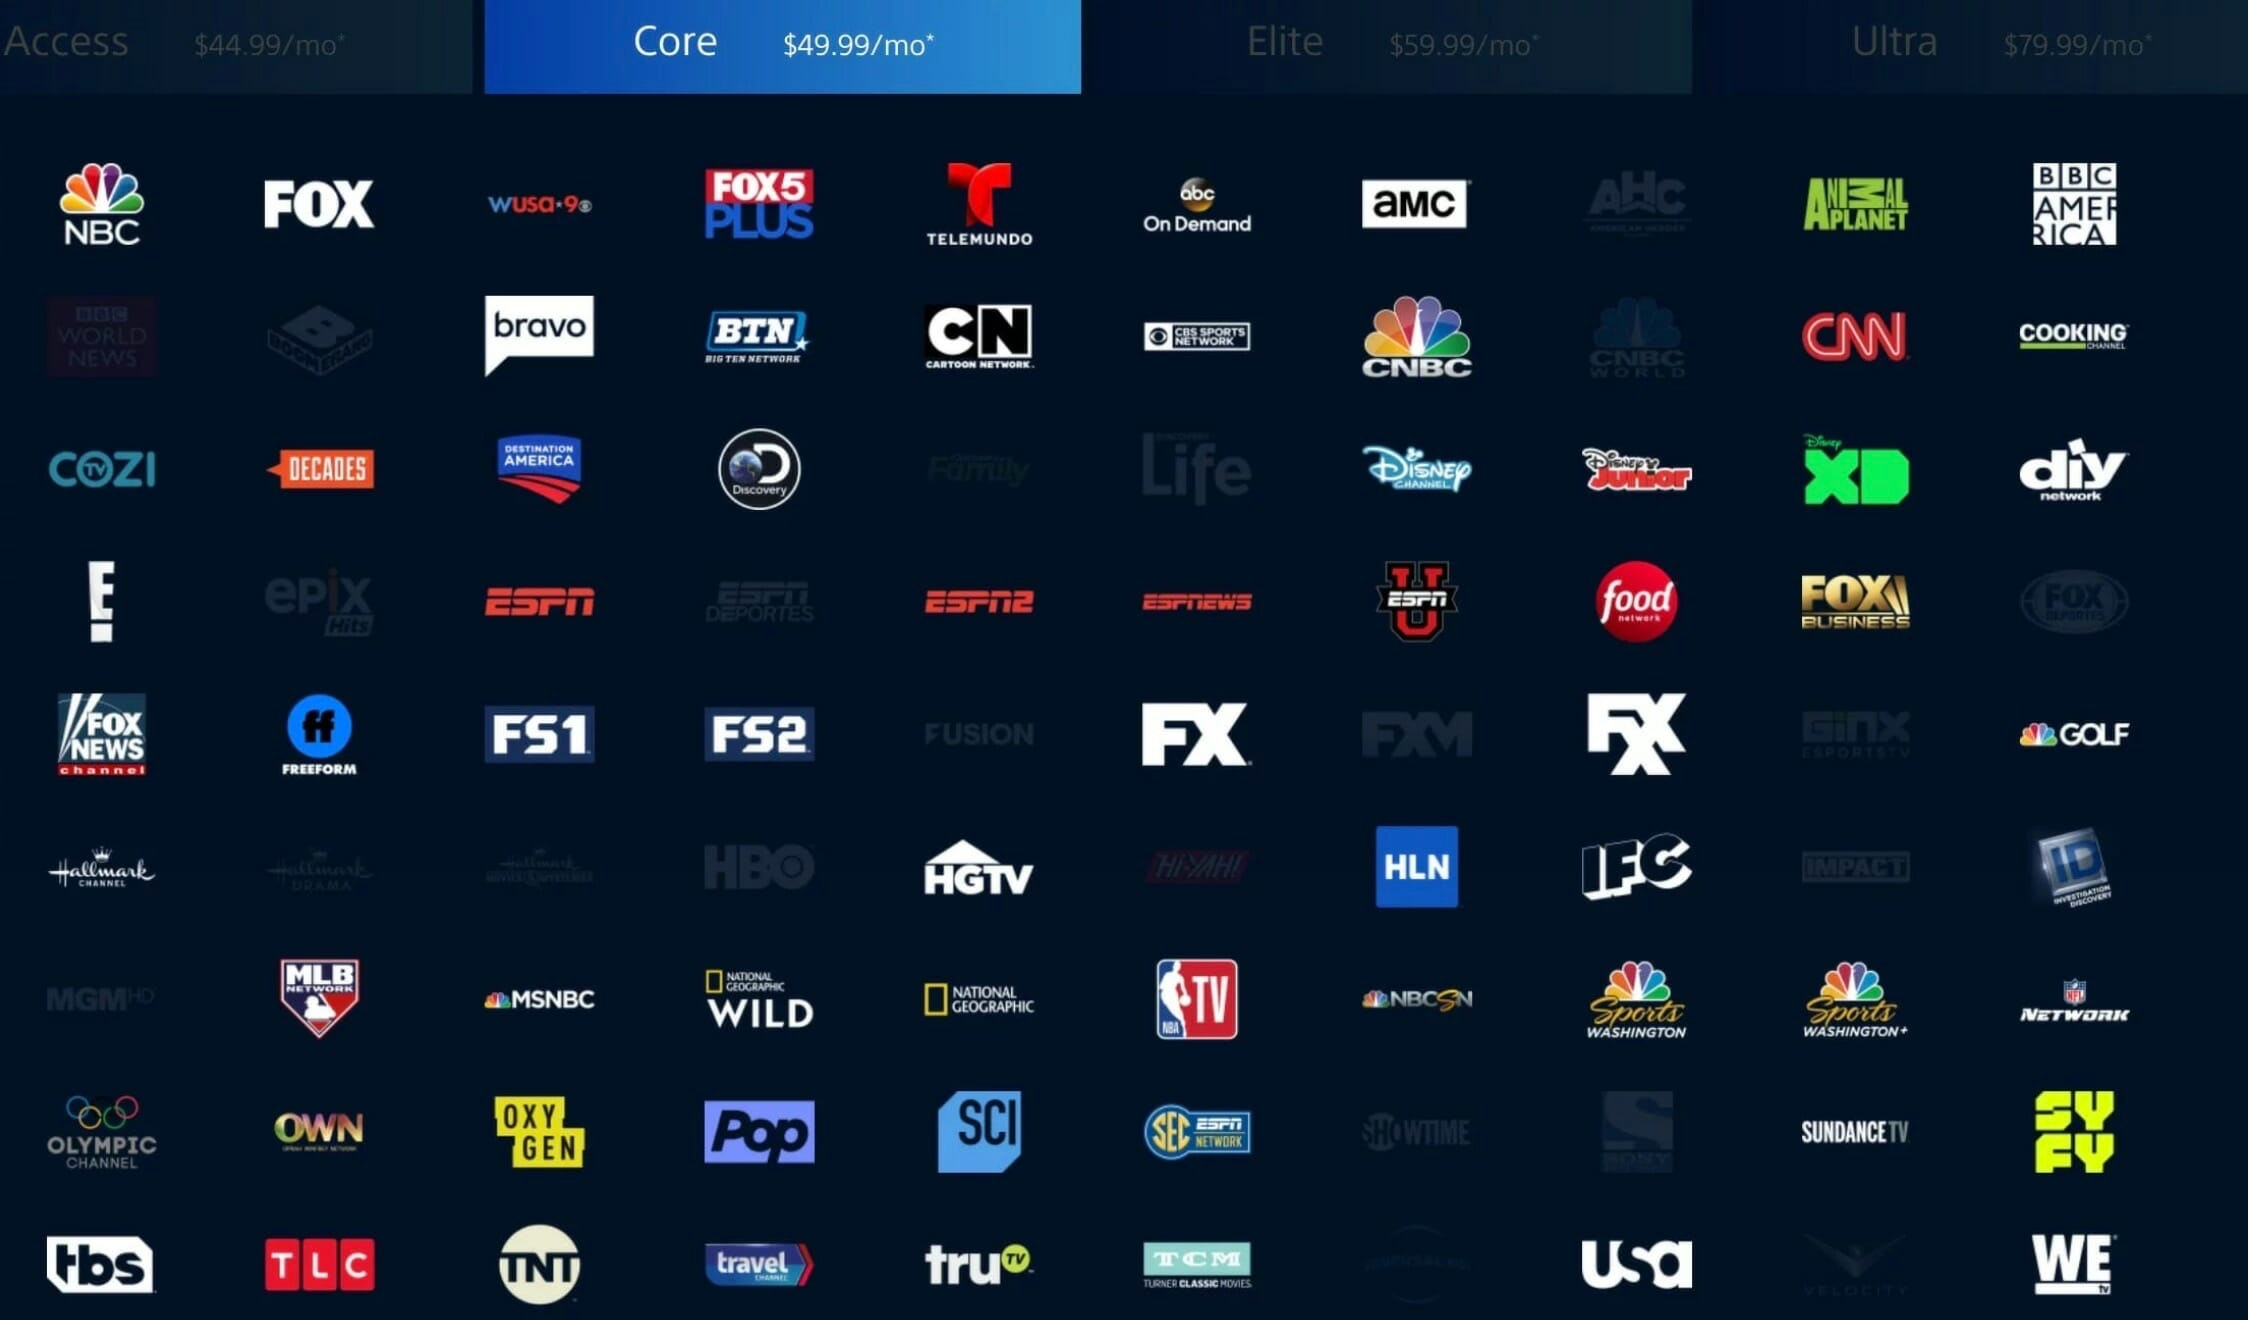 2019-20 premier league manchester united vs crystal palace soccer live stream free playstation vue